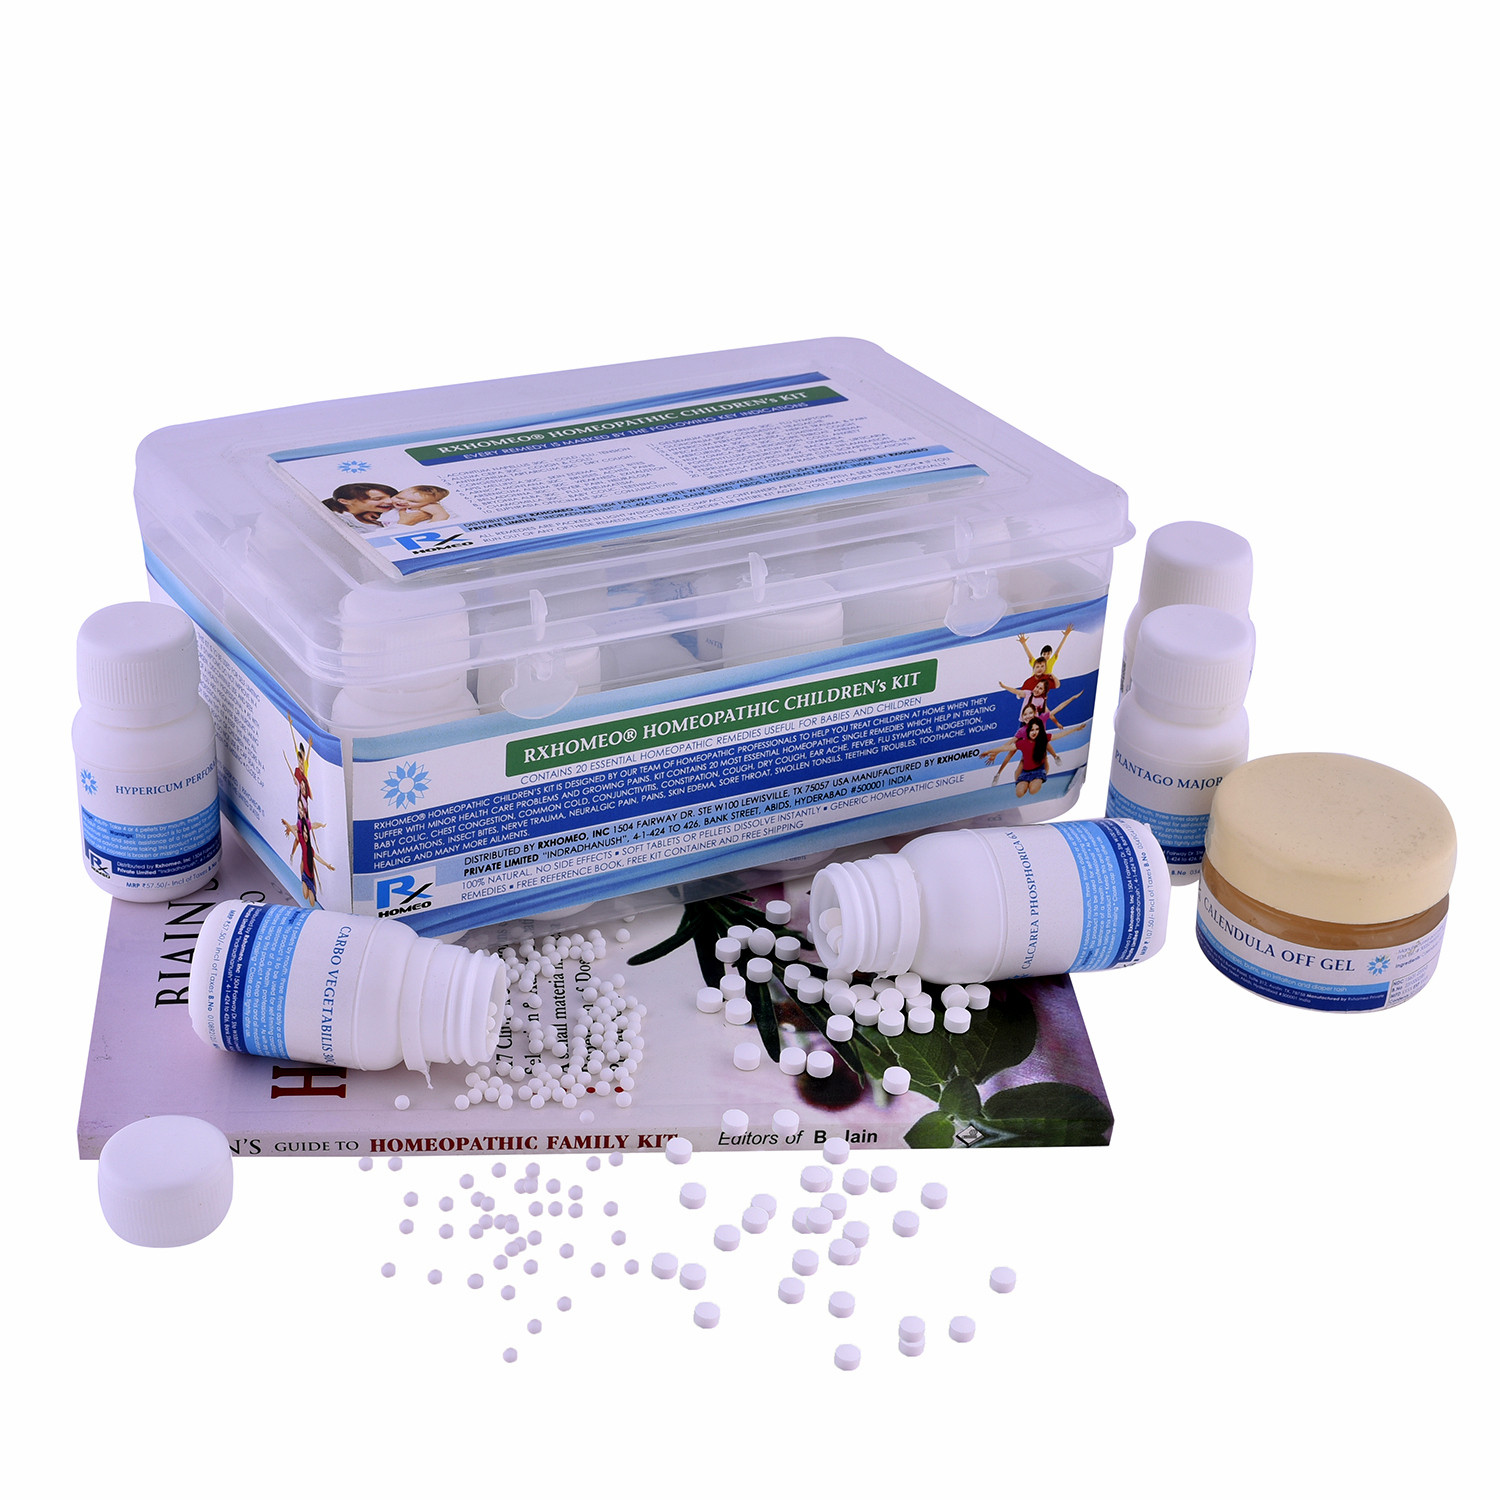 Rxhomeo® Homeopathic Childrens Kit